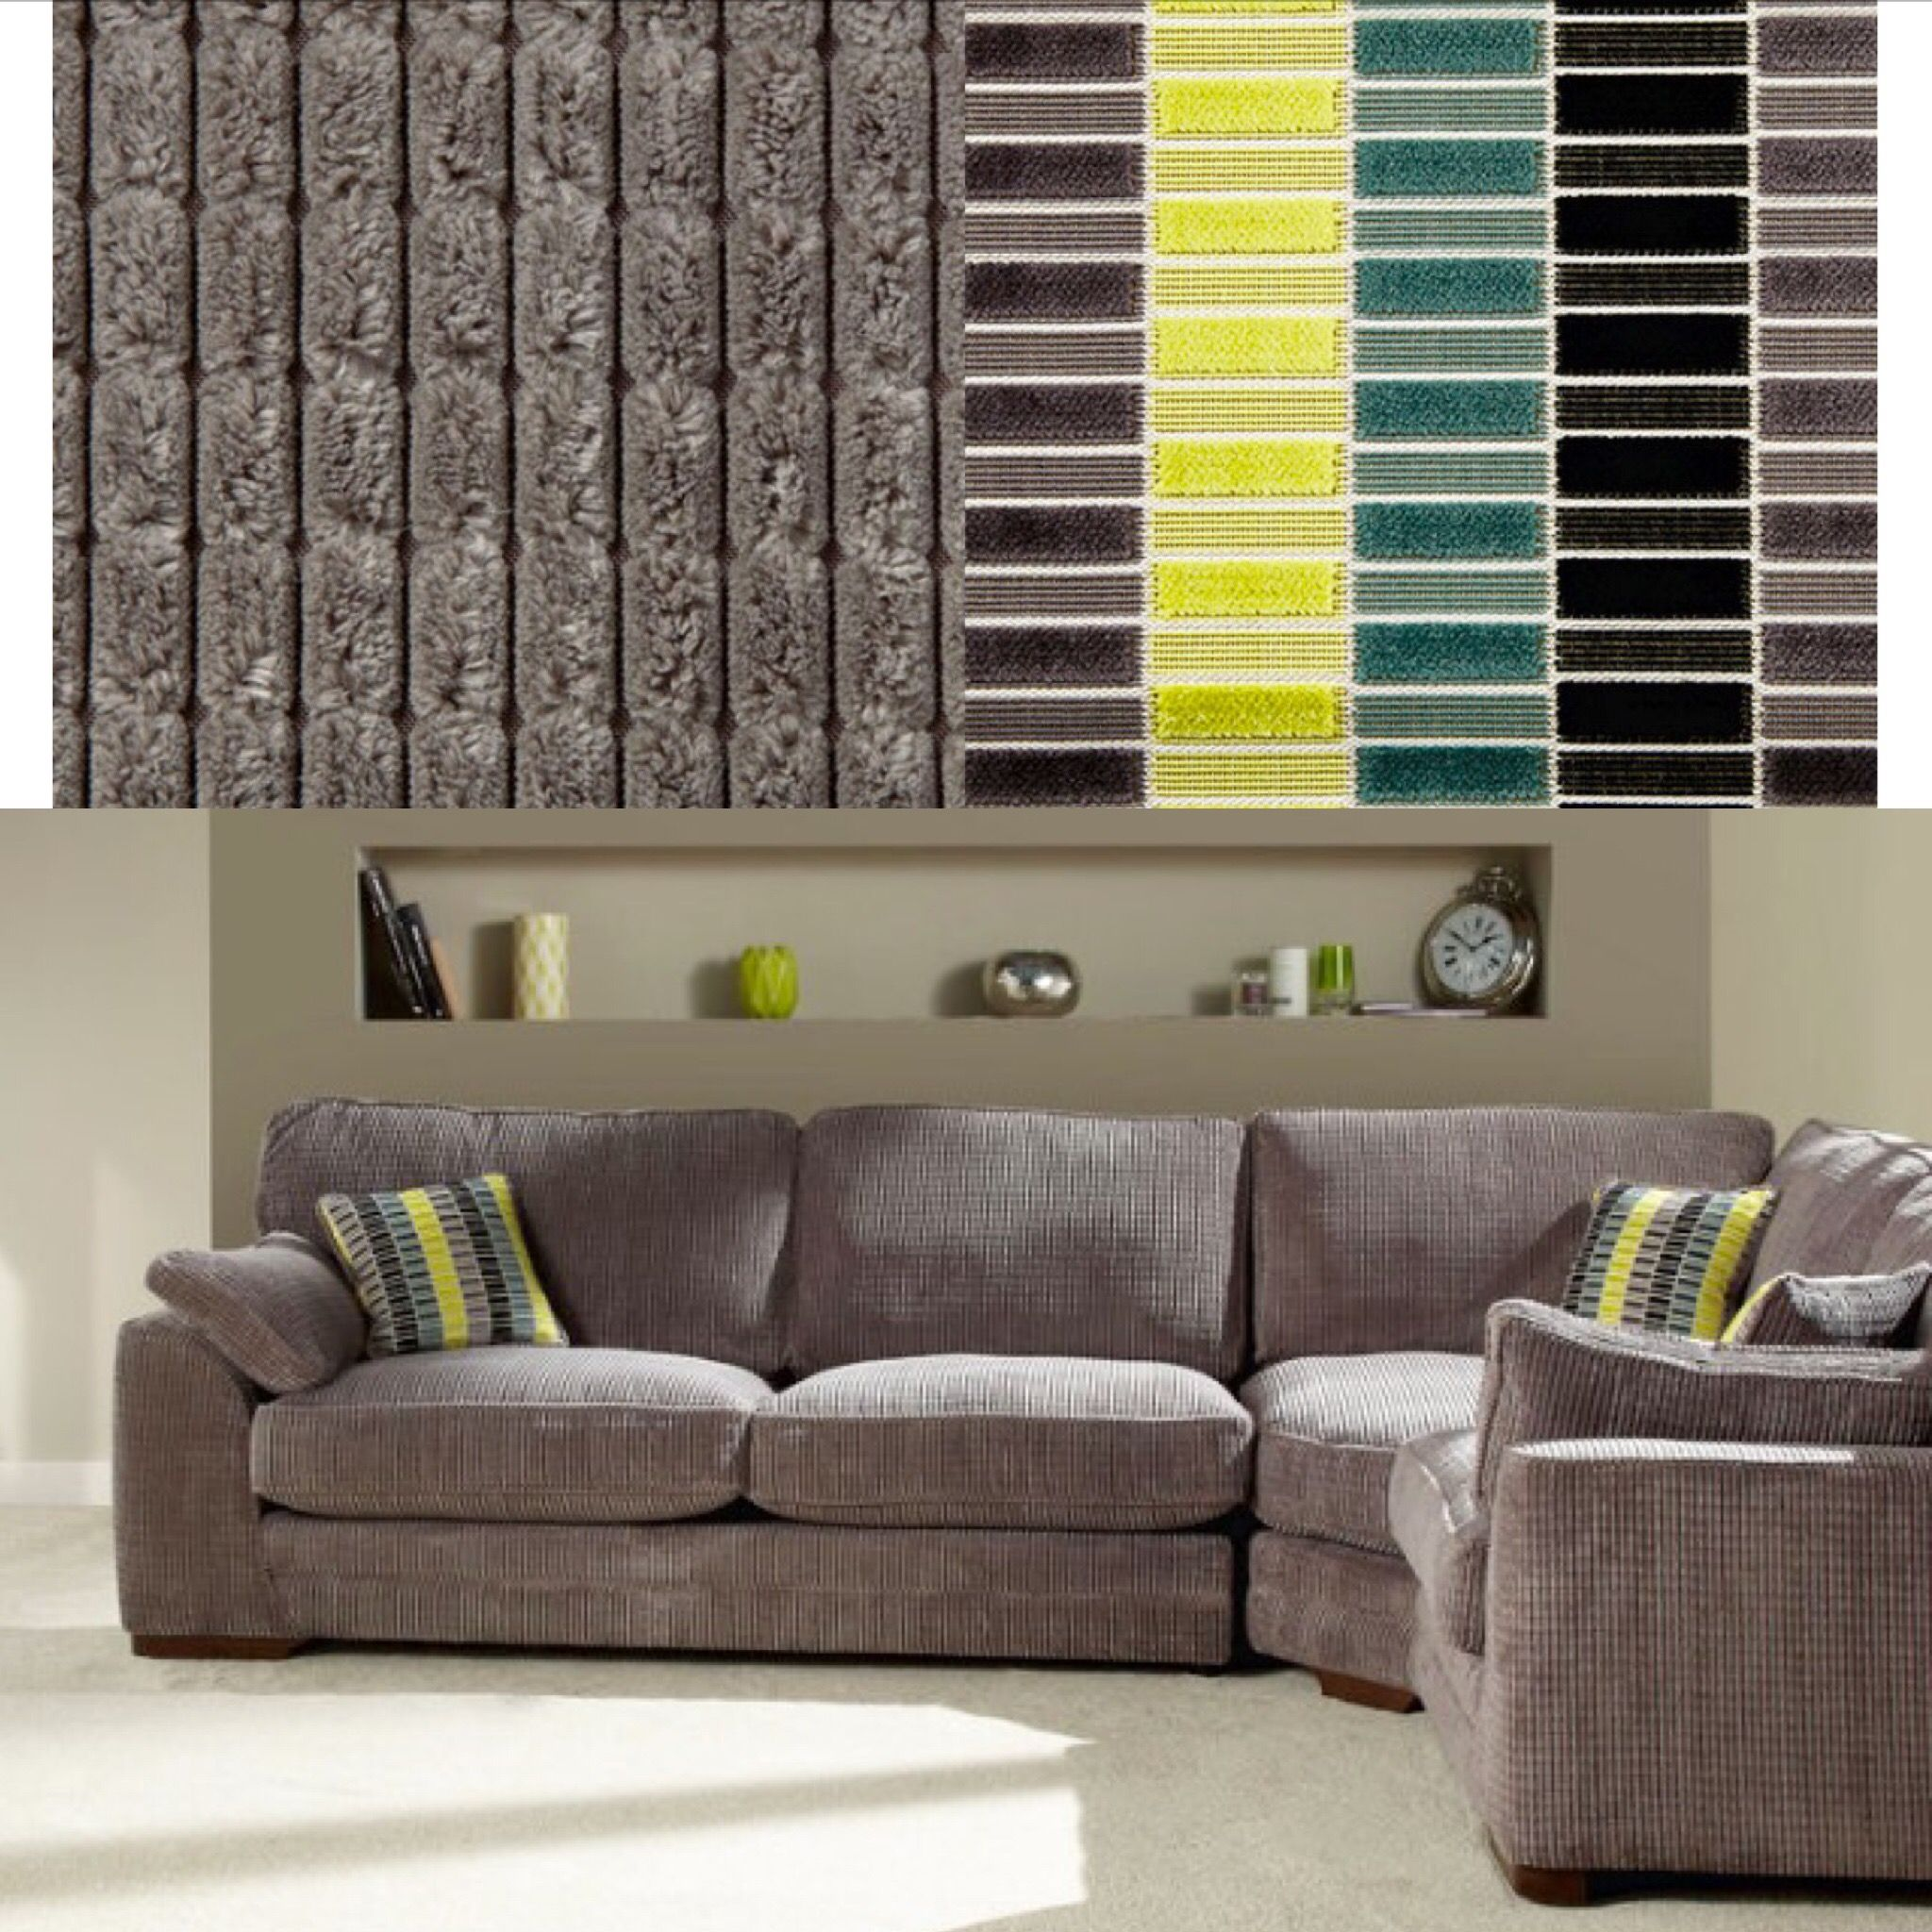 House Of Fraser Corner Sofa Ikea L Shaped Blocks Radiator How To Install A New In 7